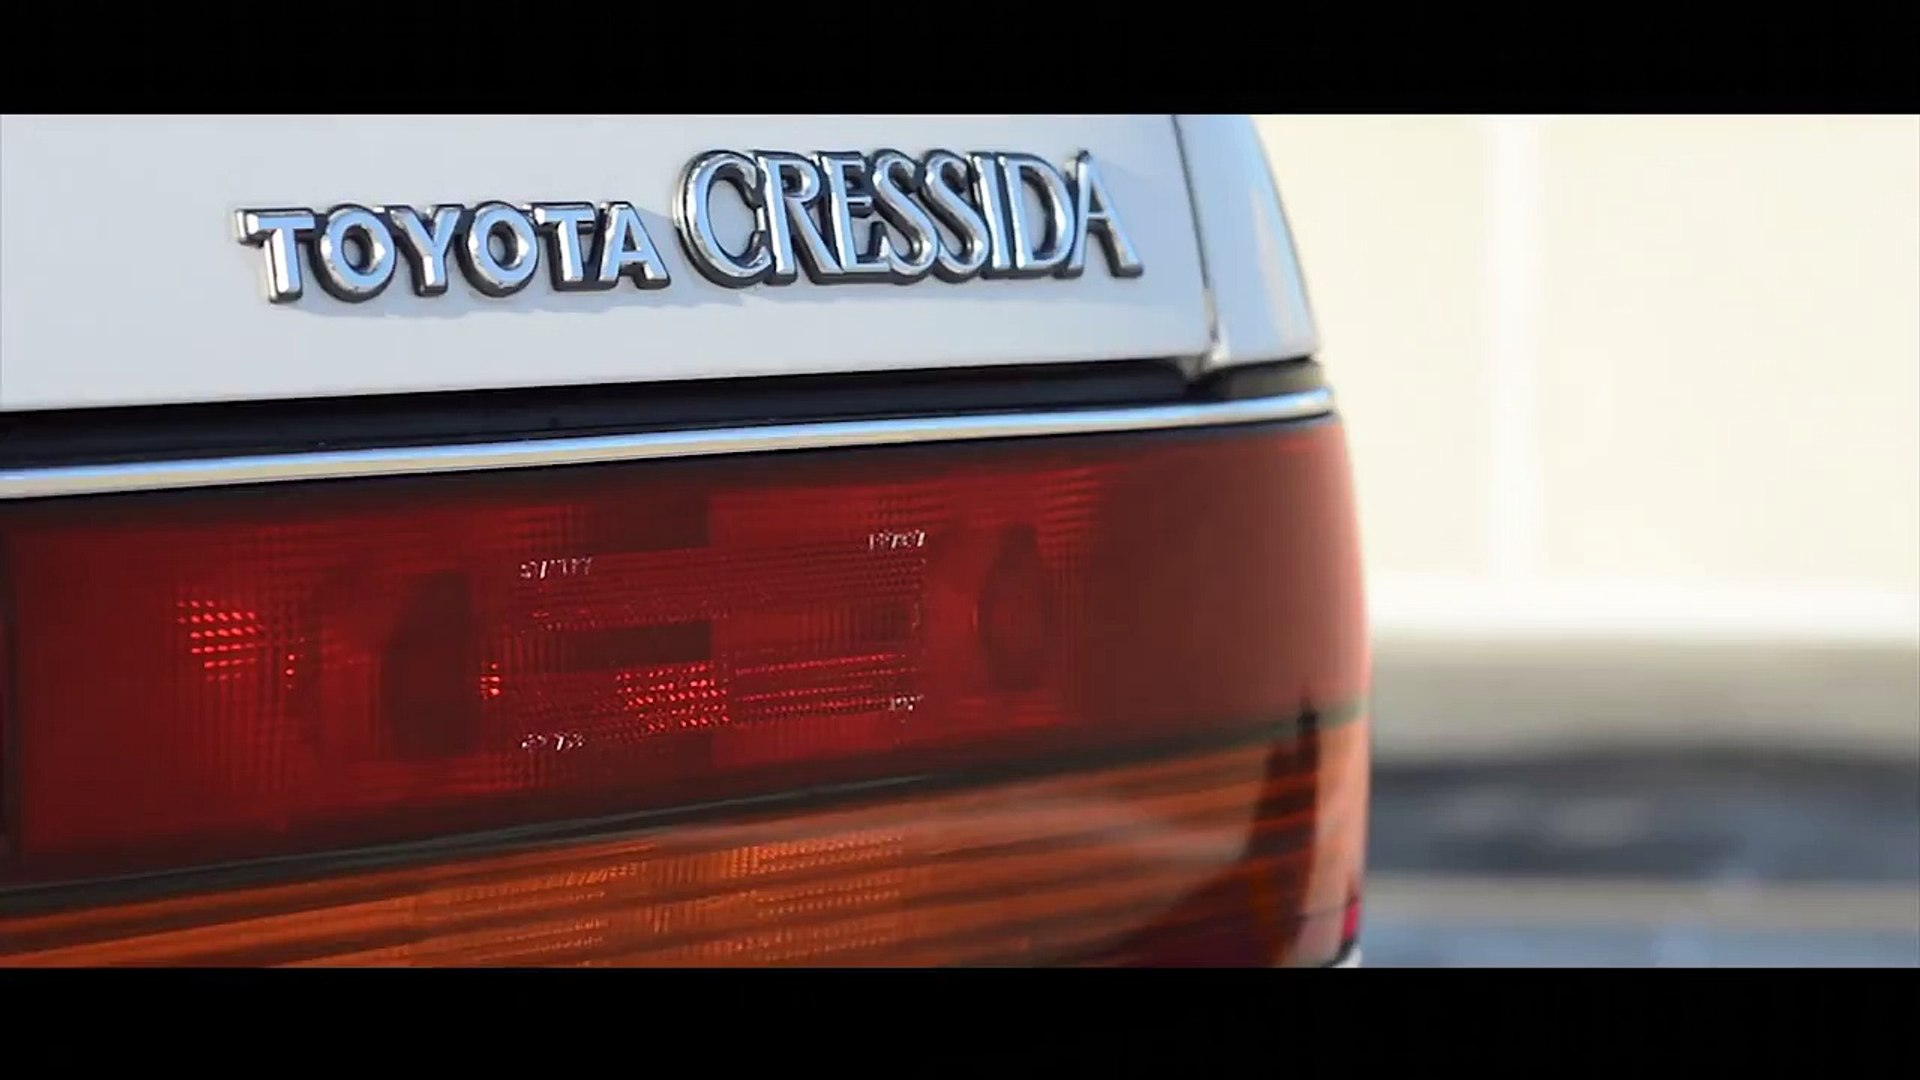 Sean Chiccino's 1JZ Toyota Cressida - STANCED SOCIETY - ~PROPER STANCE~